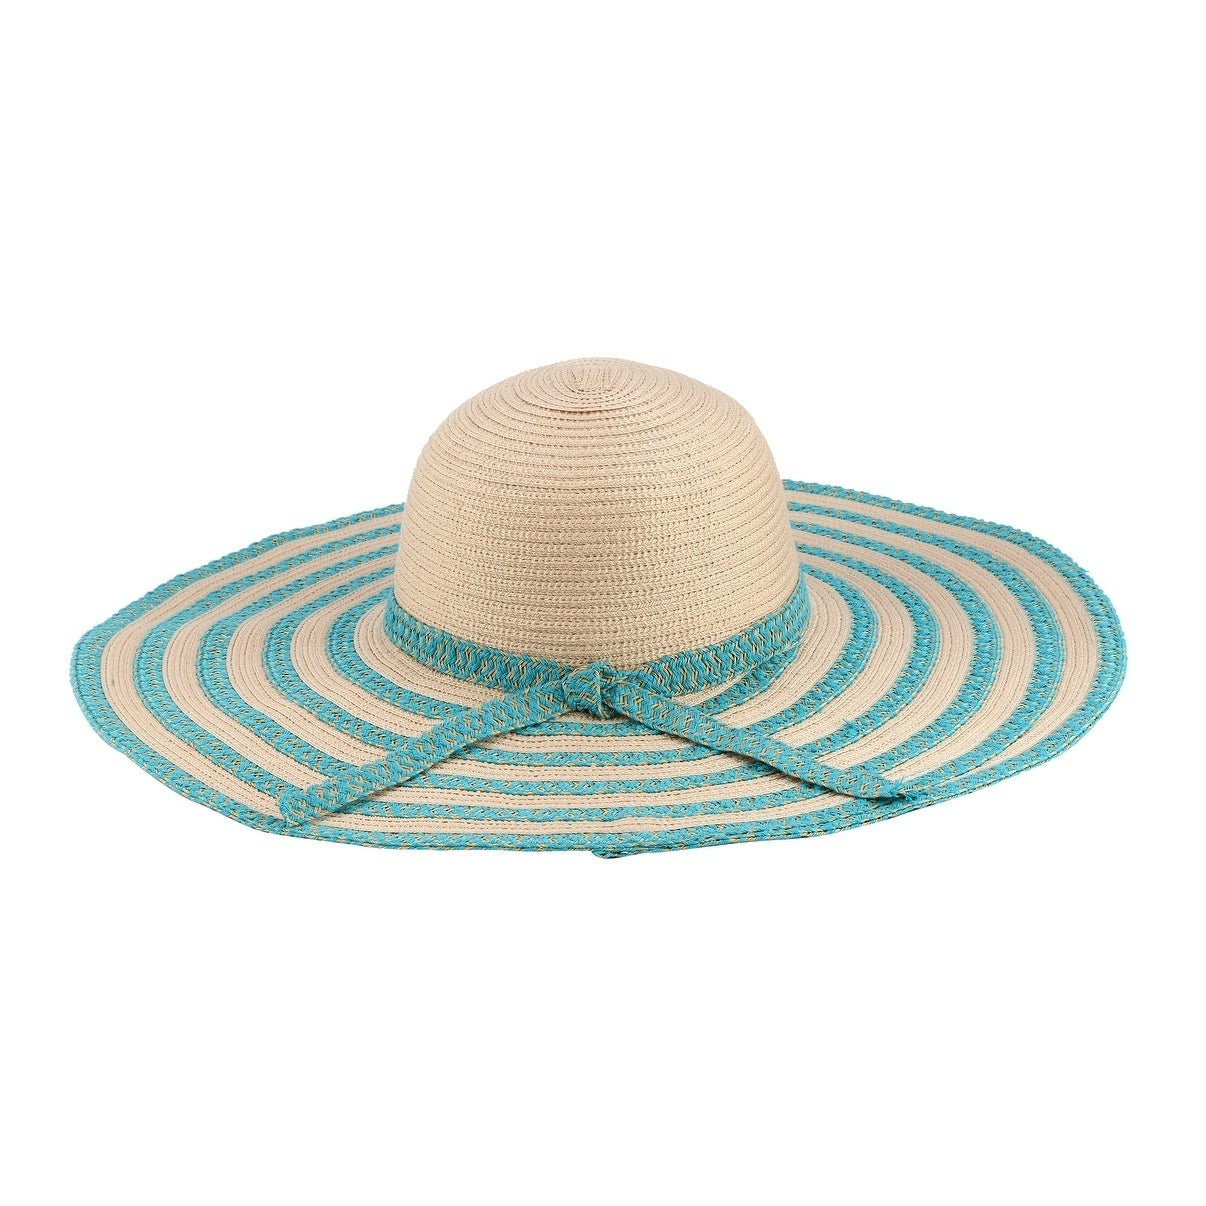 Shop Selma - 20% Nylon 80% Cotton Woven Fabric Extra Large Wide Brim Sun  Hat Sun Styles - AH-017-9-PBL - Free Shipping On Orders Over  45 -  Overstock.com - ... abb39523cf2